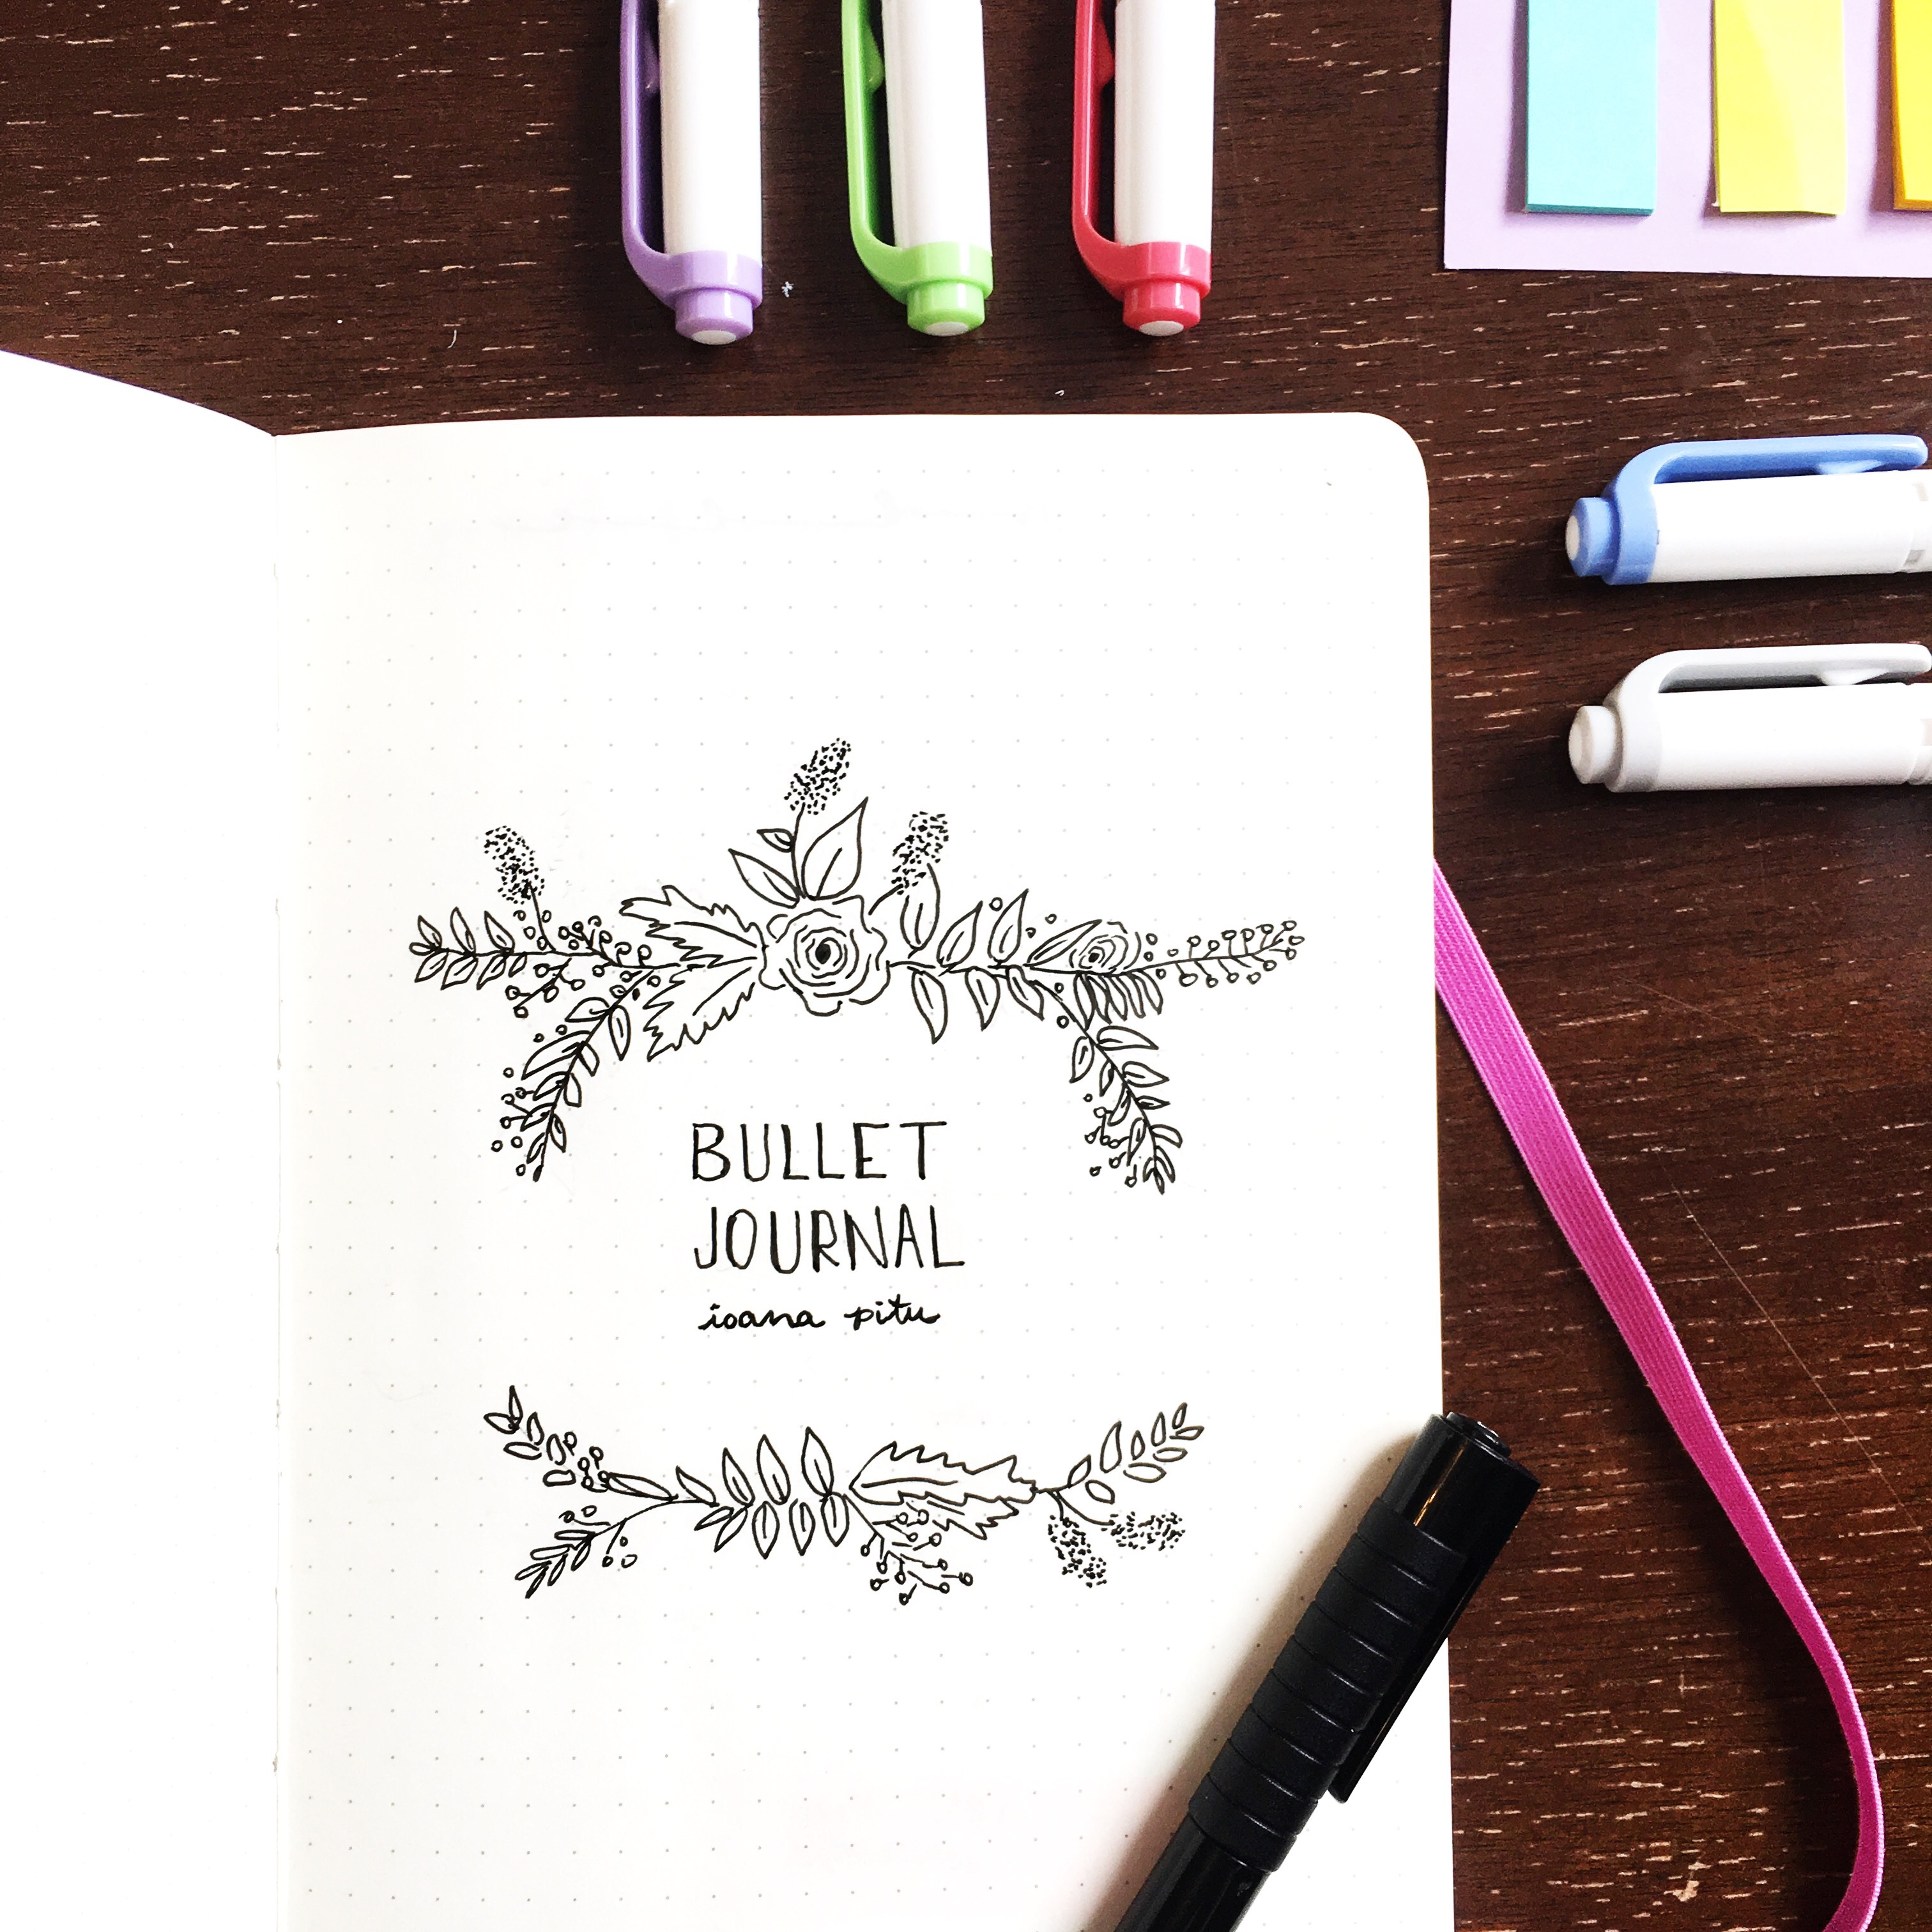 New Bullet Journal Cover Page